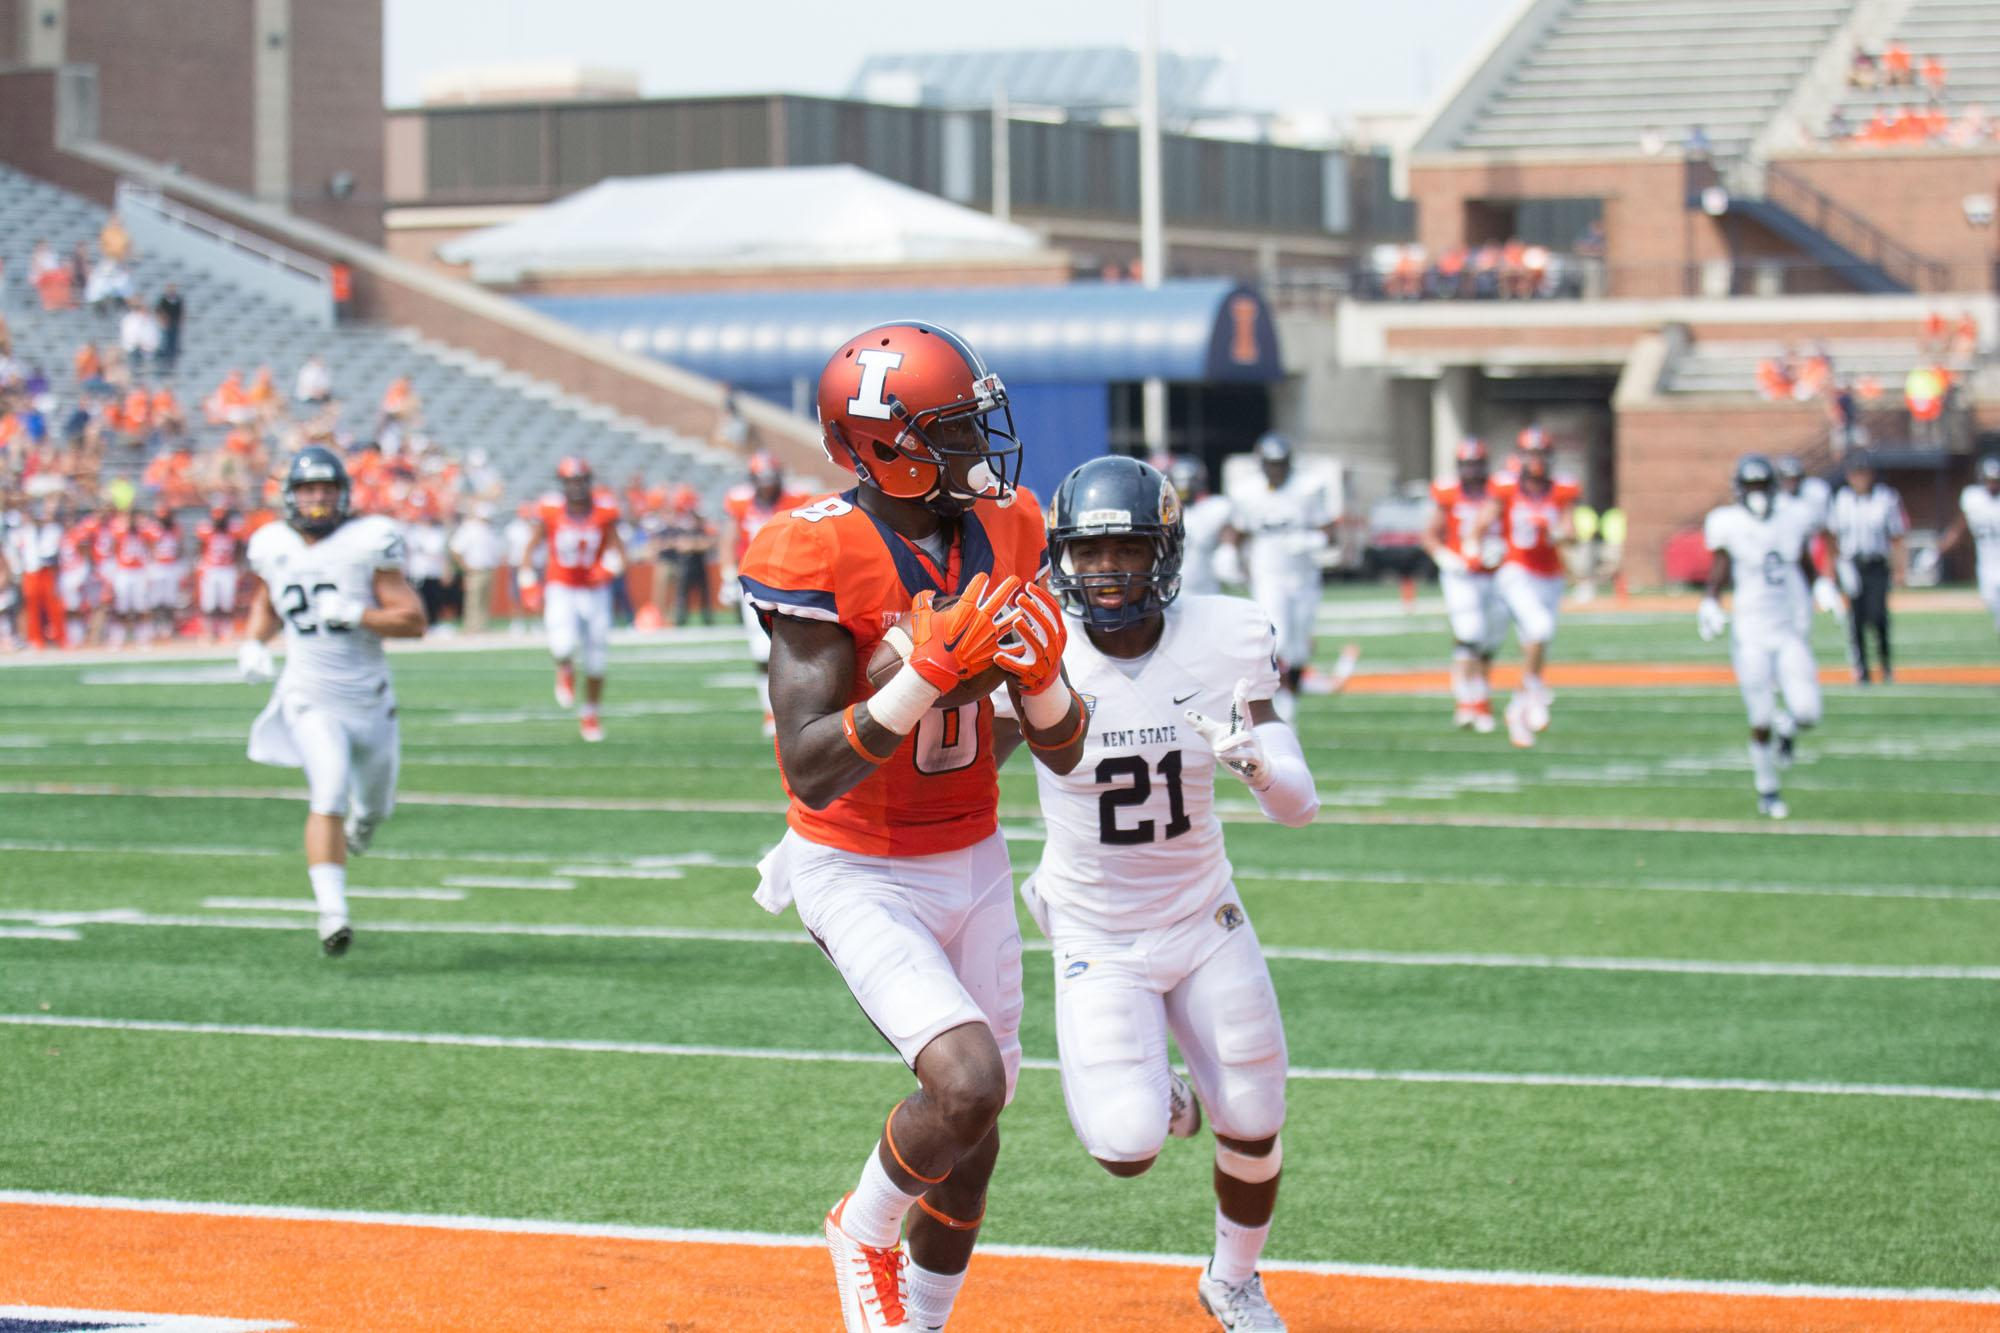 Illinois' Geronimo Allison (8) catches the ball in the end zone for a touchdown during the game against Kent State at Memorial Stadium on Saturday, Sept. 5, 2015. The Illini won 52-3.